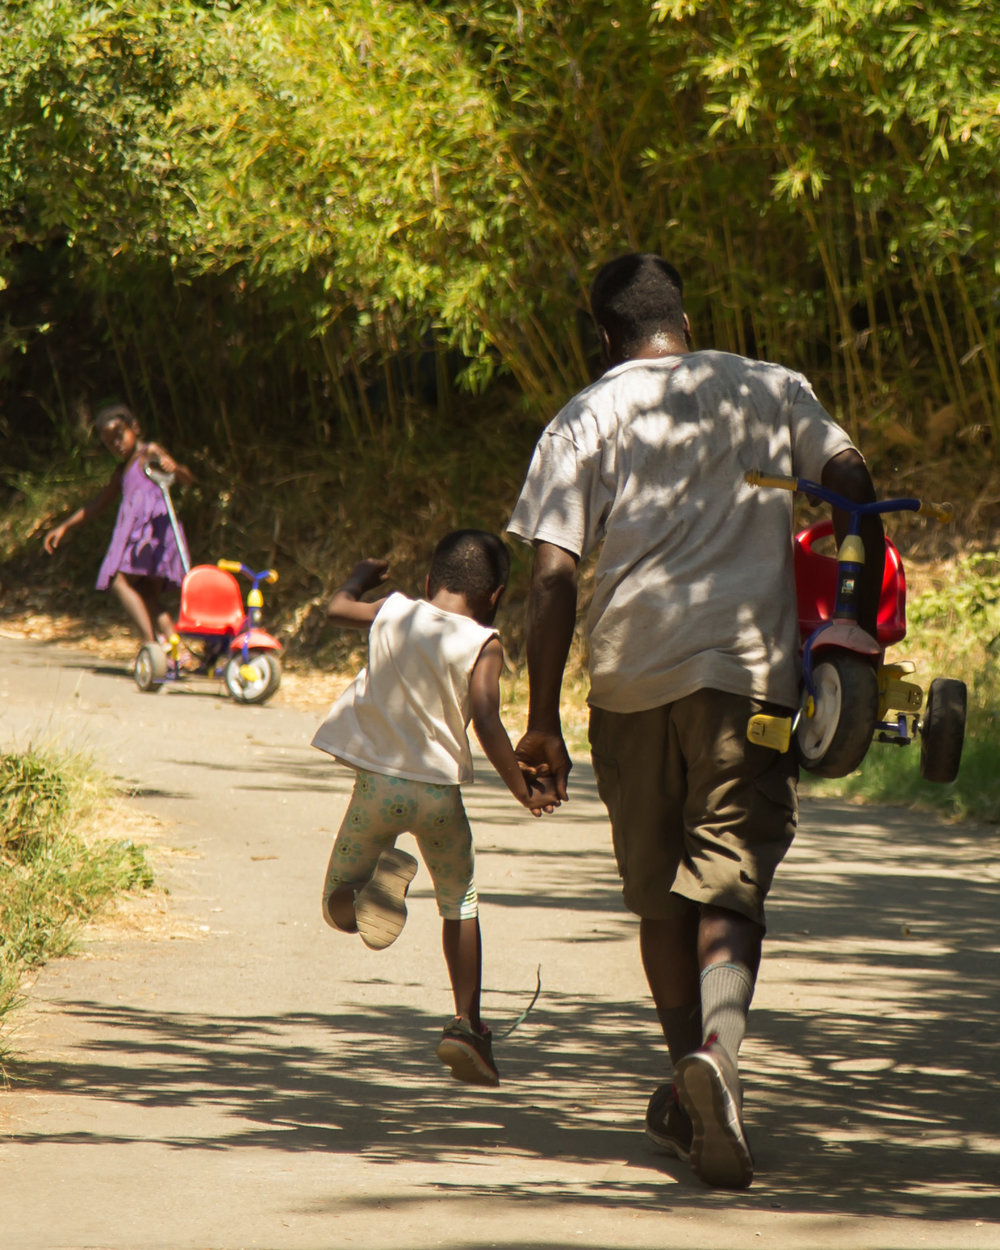 Laura's husband AJ and one of their daughters make another trek up the hill for the bicycle/tricycle race.